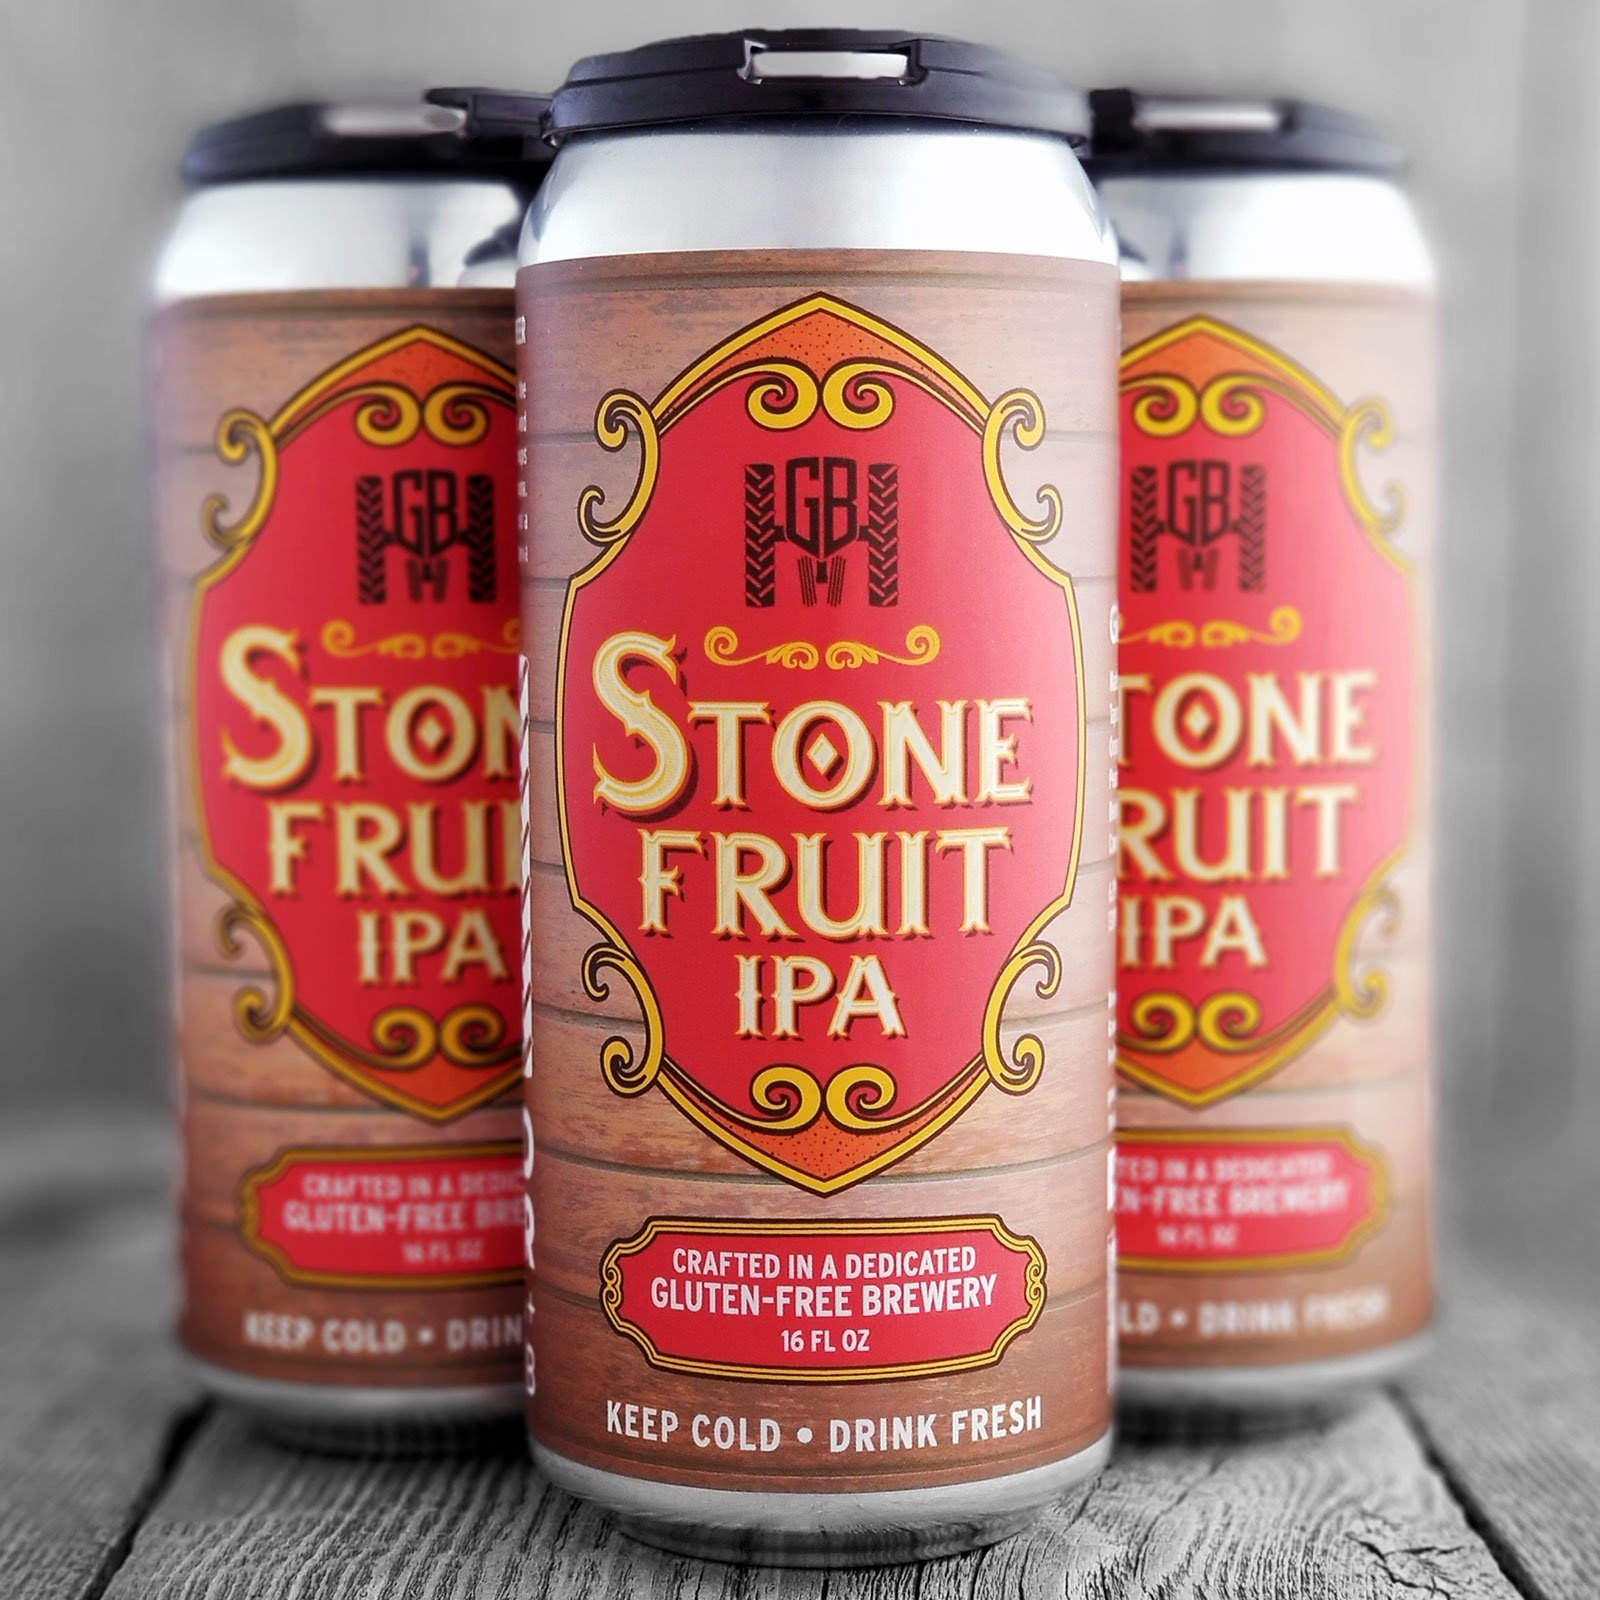 Groundbreaker Brewing & Gastropub Stone Fruit IPA Gluten-Free Ale Brewed With Apricots, Cherries & Peaches 16oz 4Pk Cans